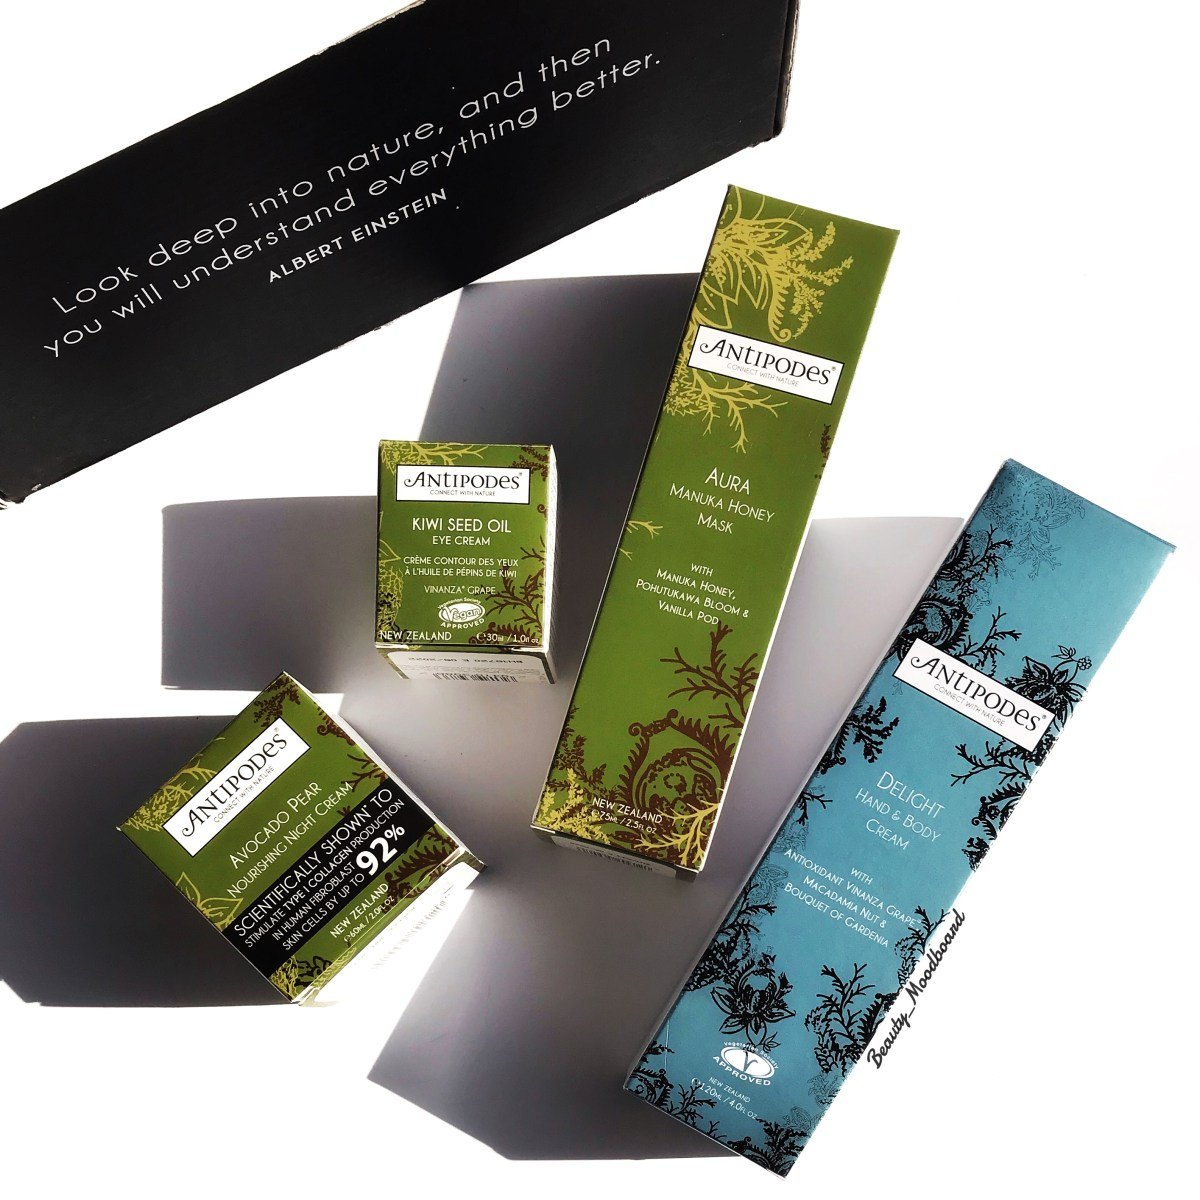 Antipodes Skincare #connectwithnature !